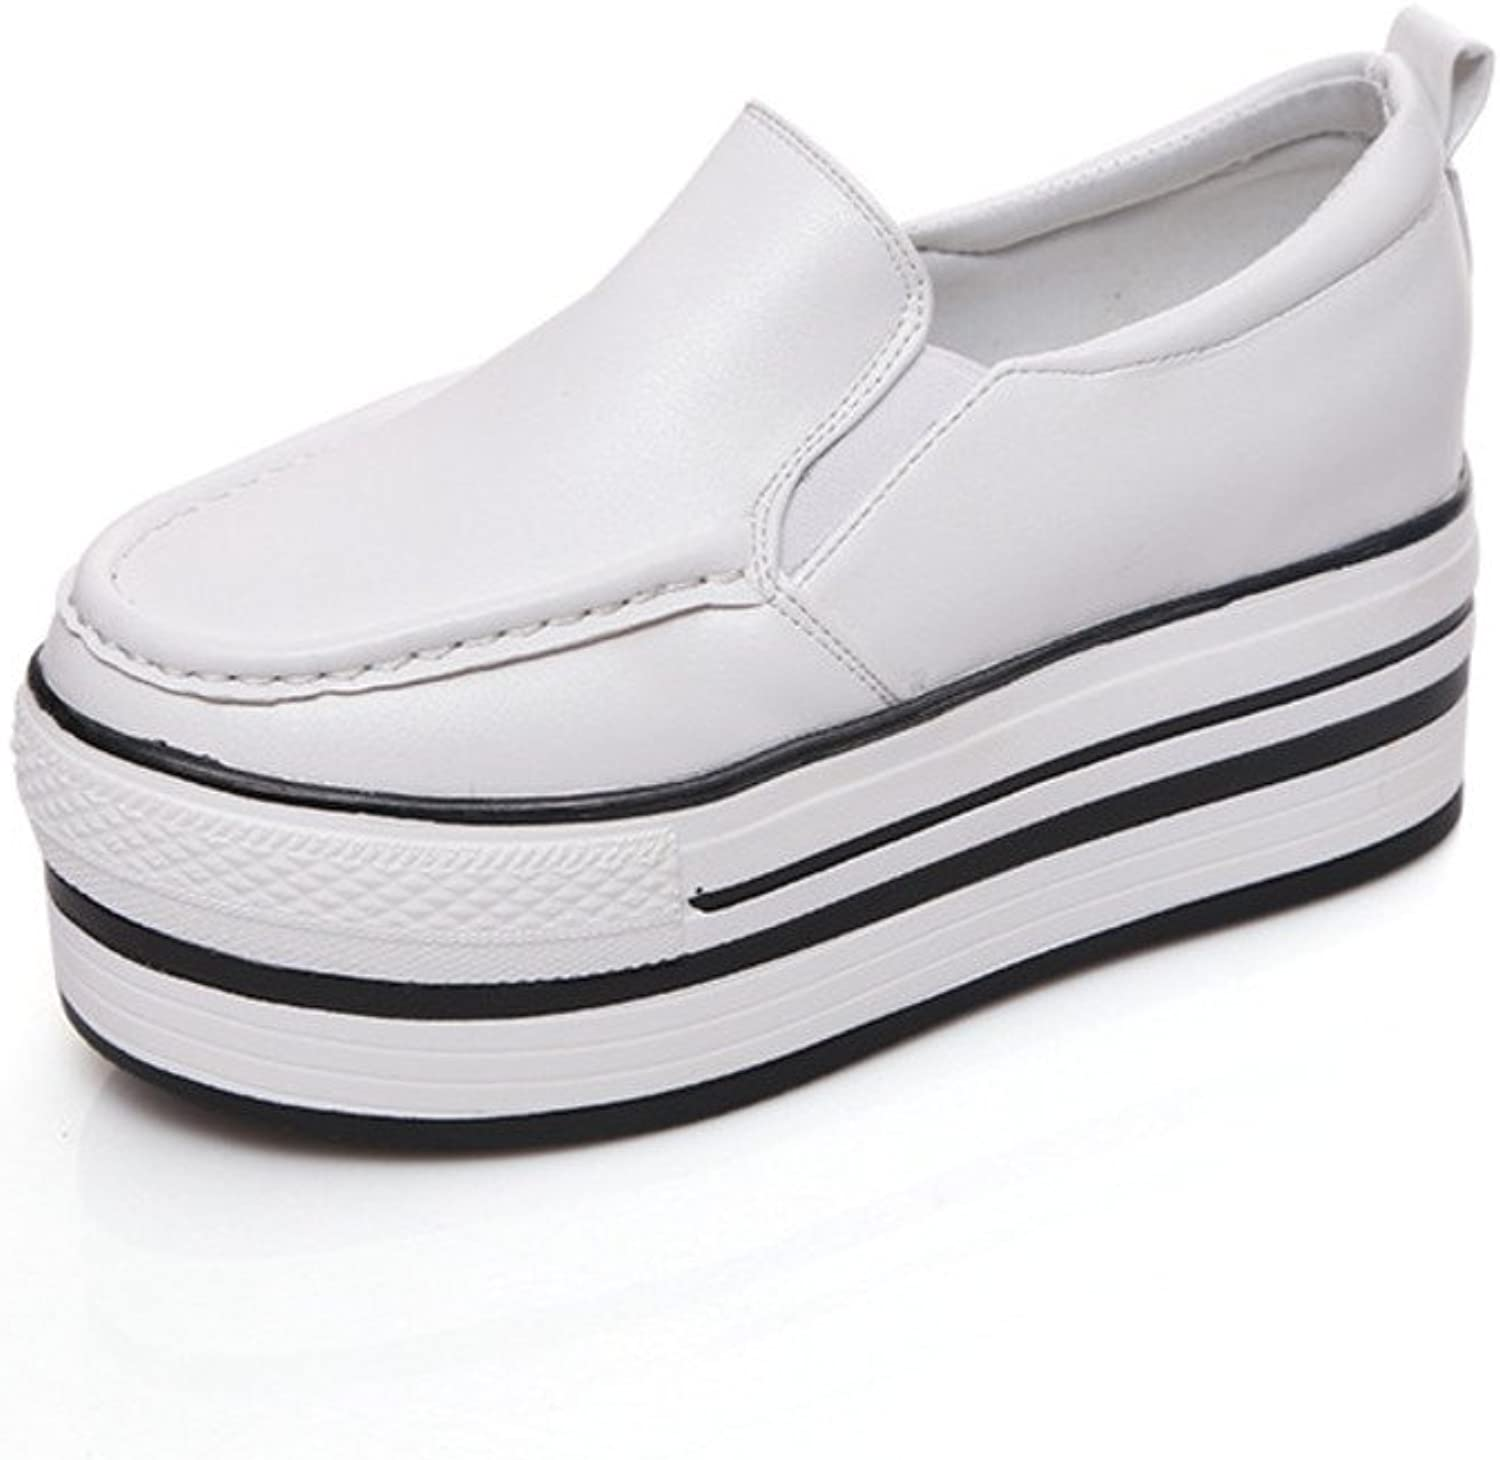 The Korean version of thick-soled platform shoes in summer and autumn College style shoes adding high casual shoes